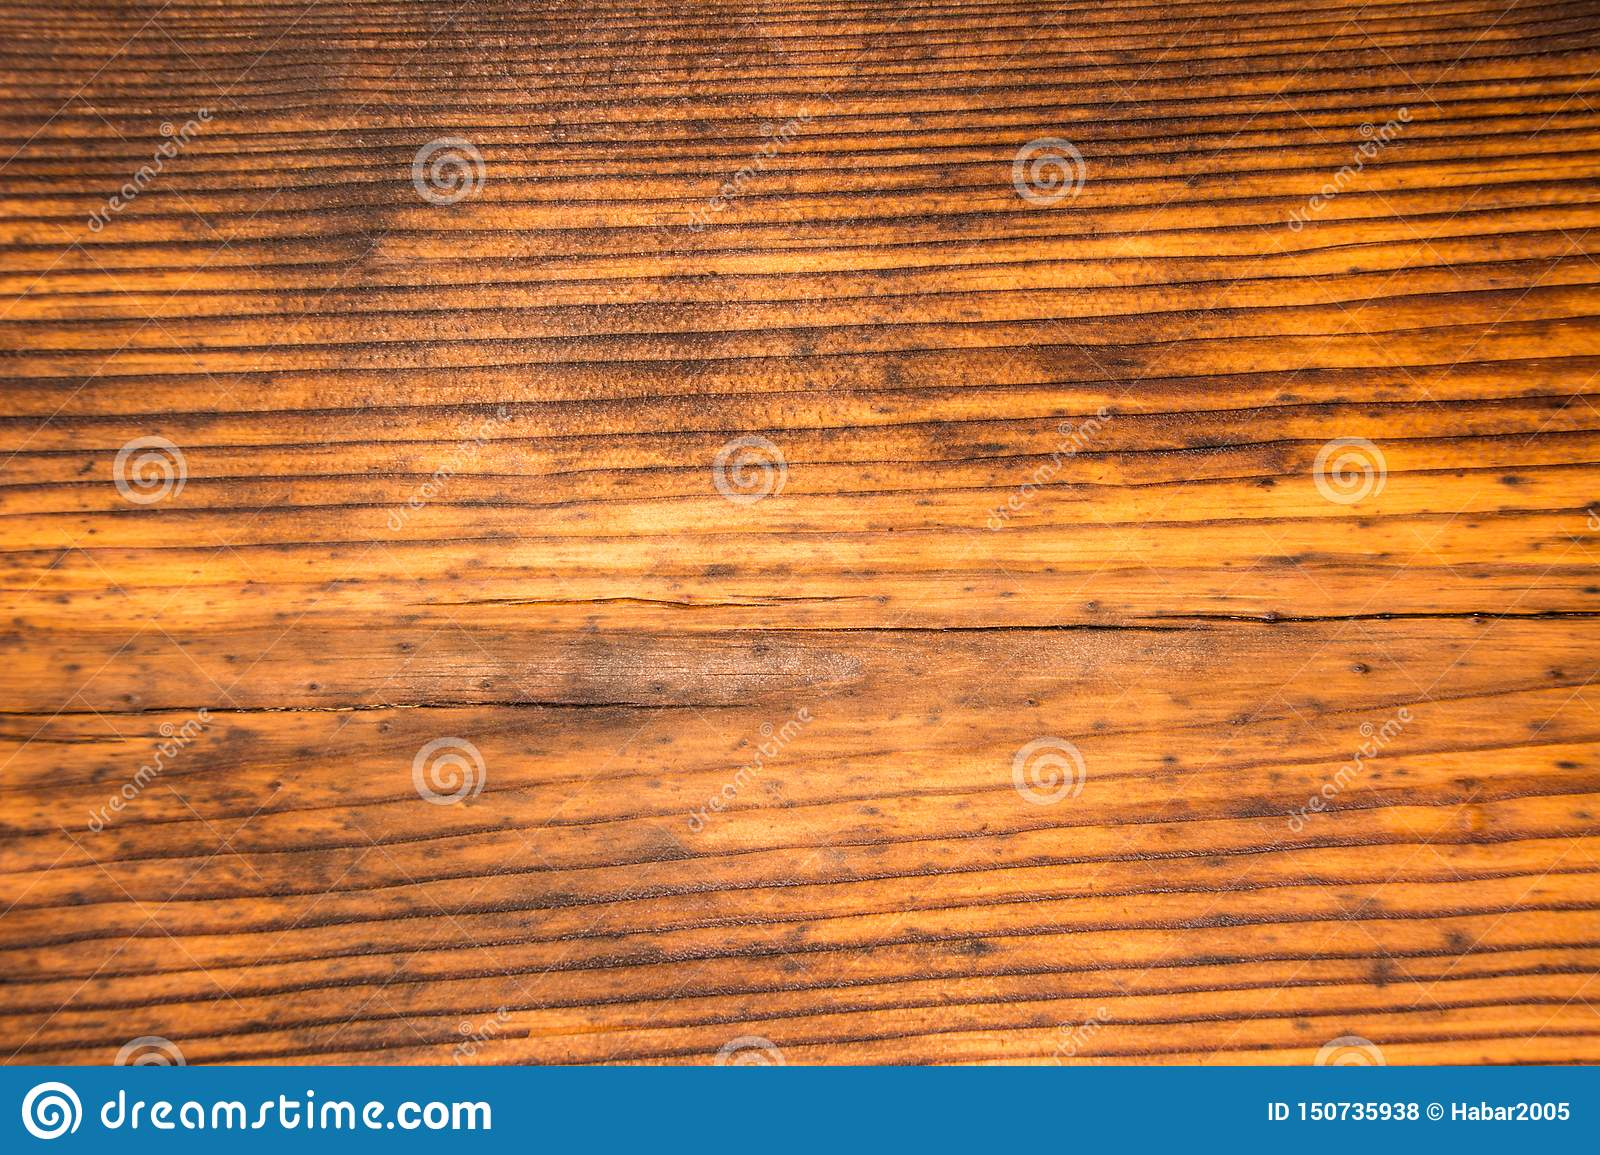 The texture of the old pine. Wood texture